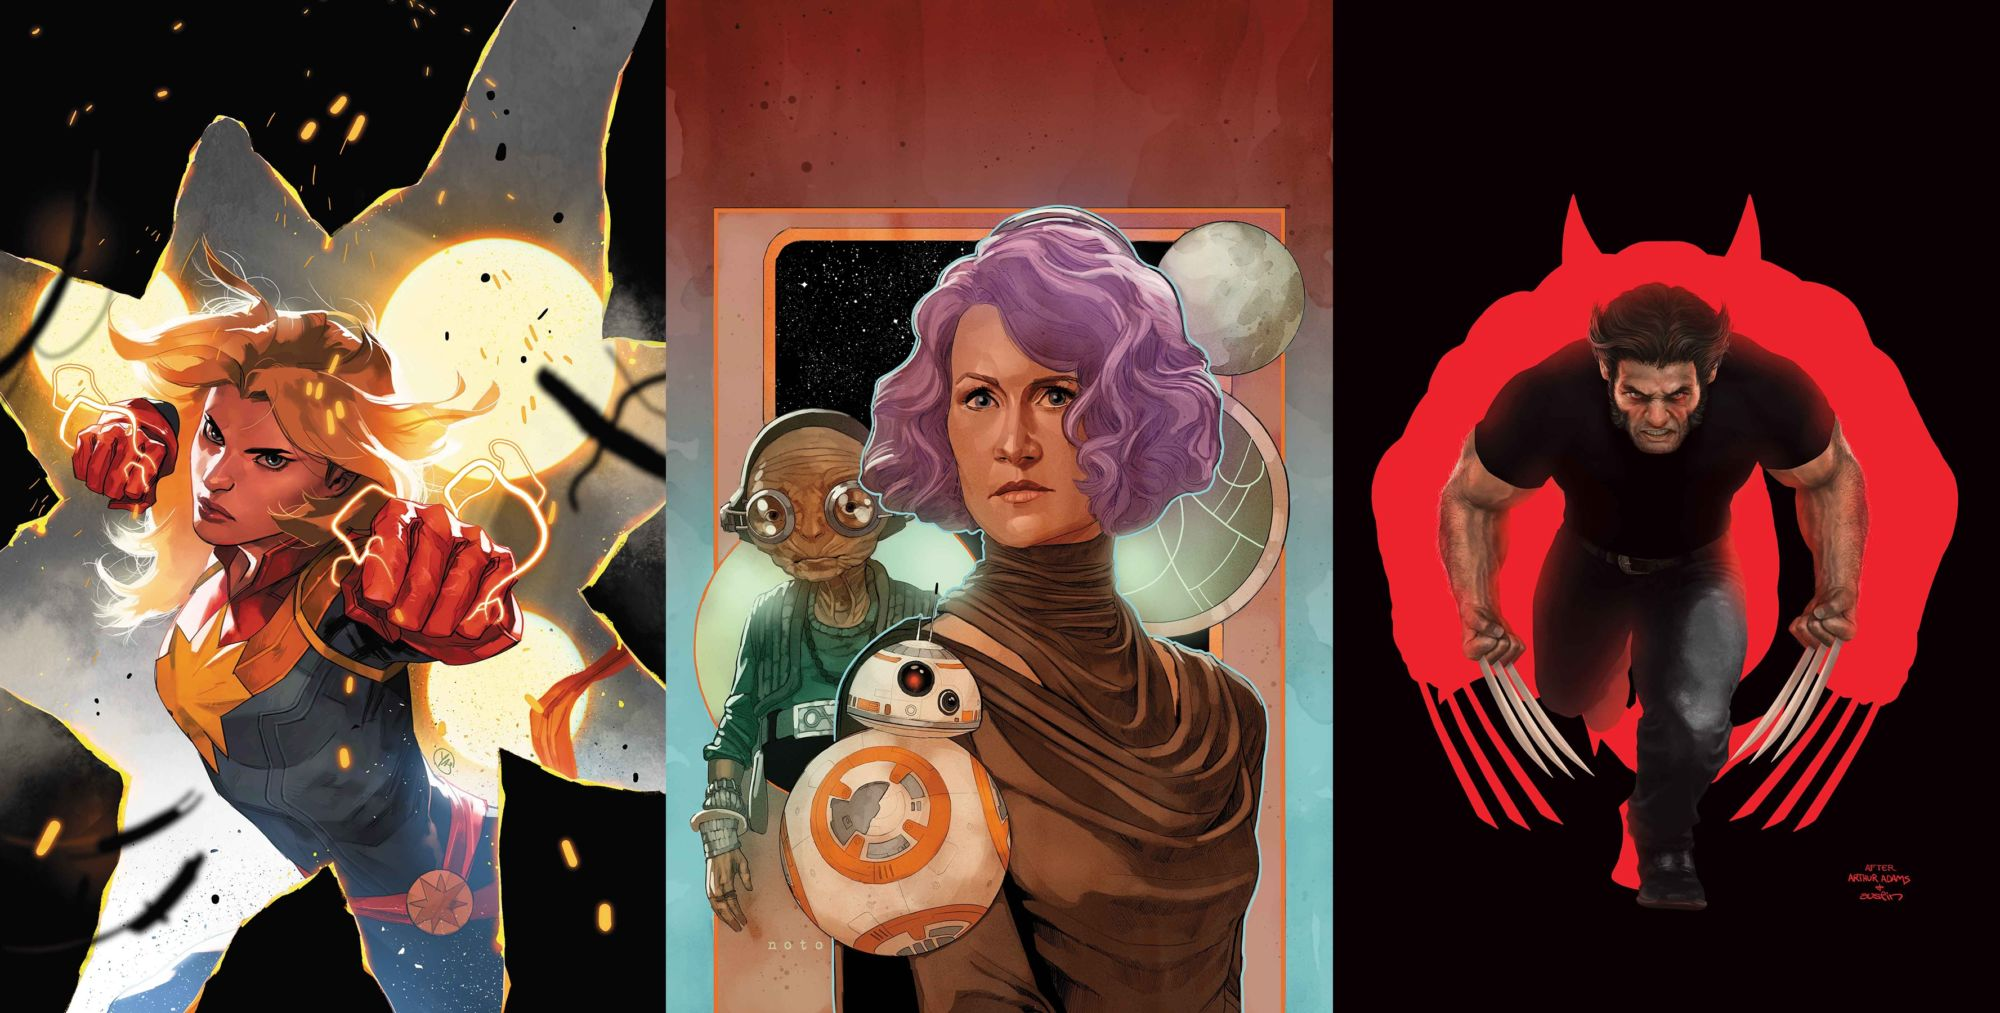 Marvel Ch-Ch-Changes - Star Wars, Fearless and MCP...